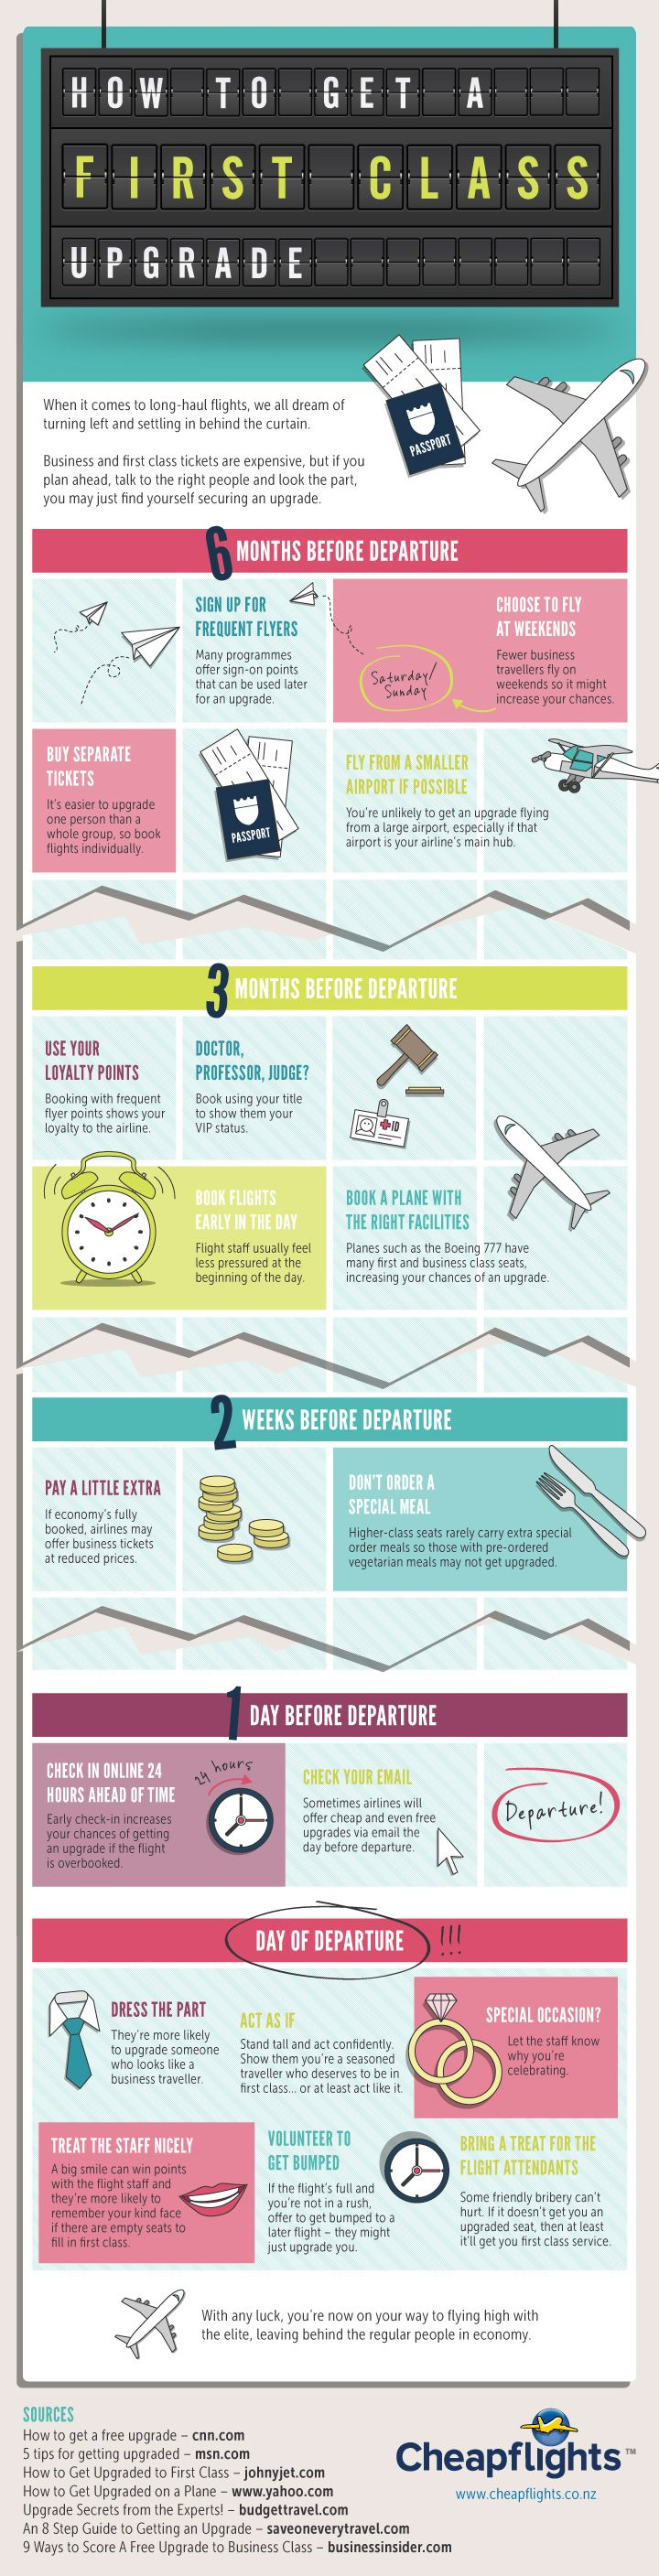 How To Get A First Class Upgrade - Infographic